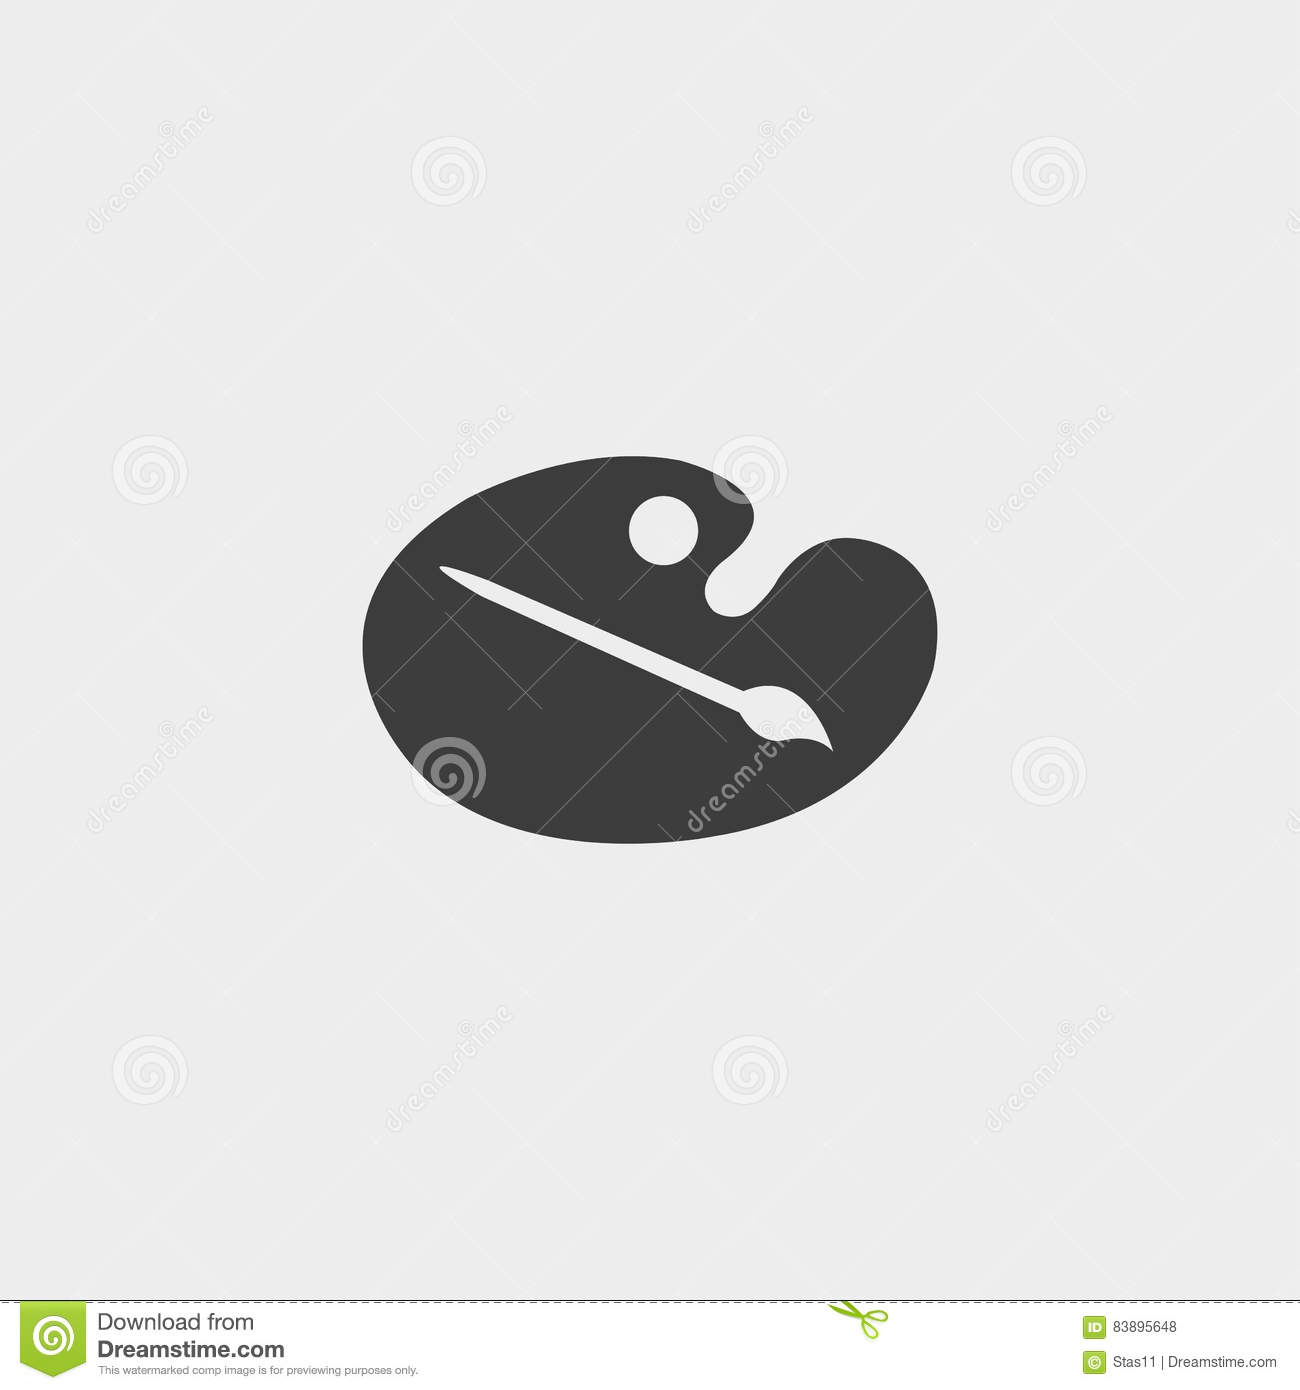 Easel and paintbrush icon in a flat design in black color. Vector illustration eps10